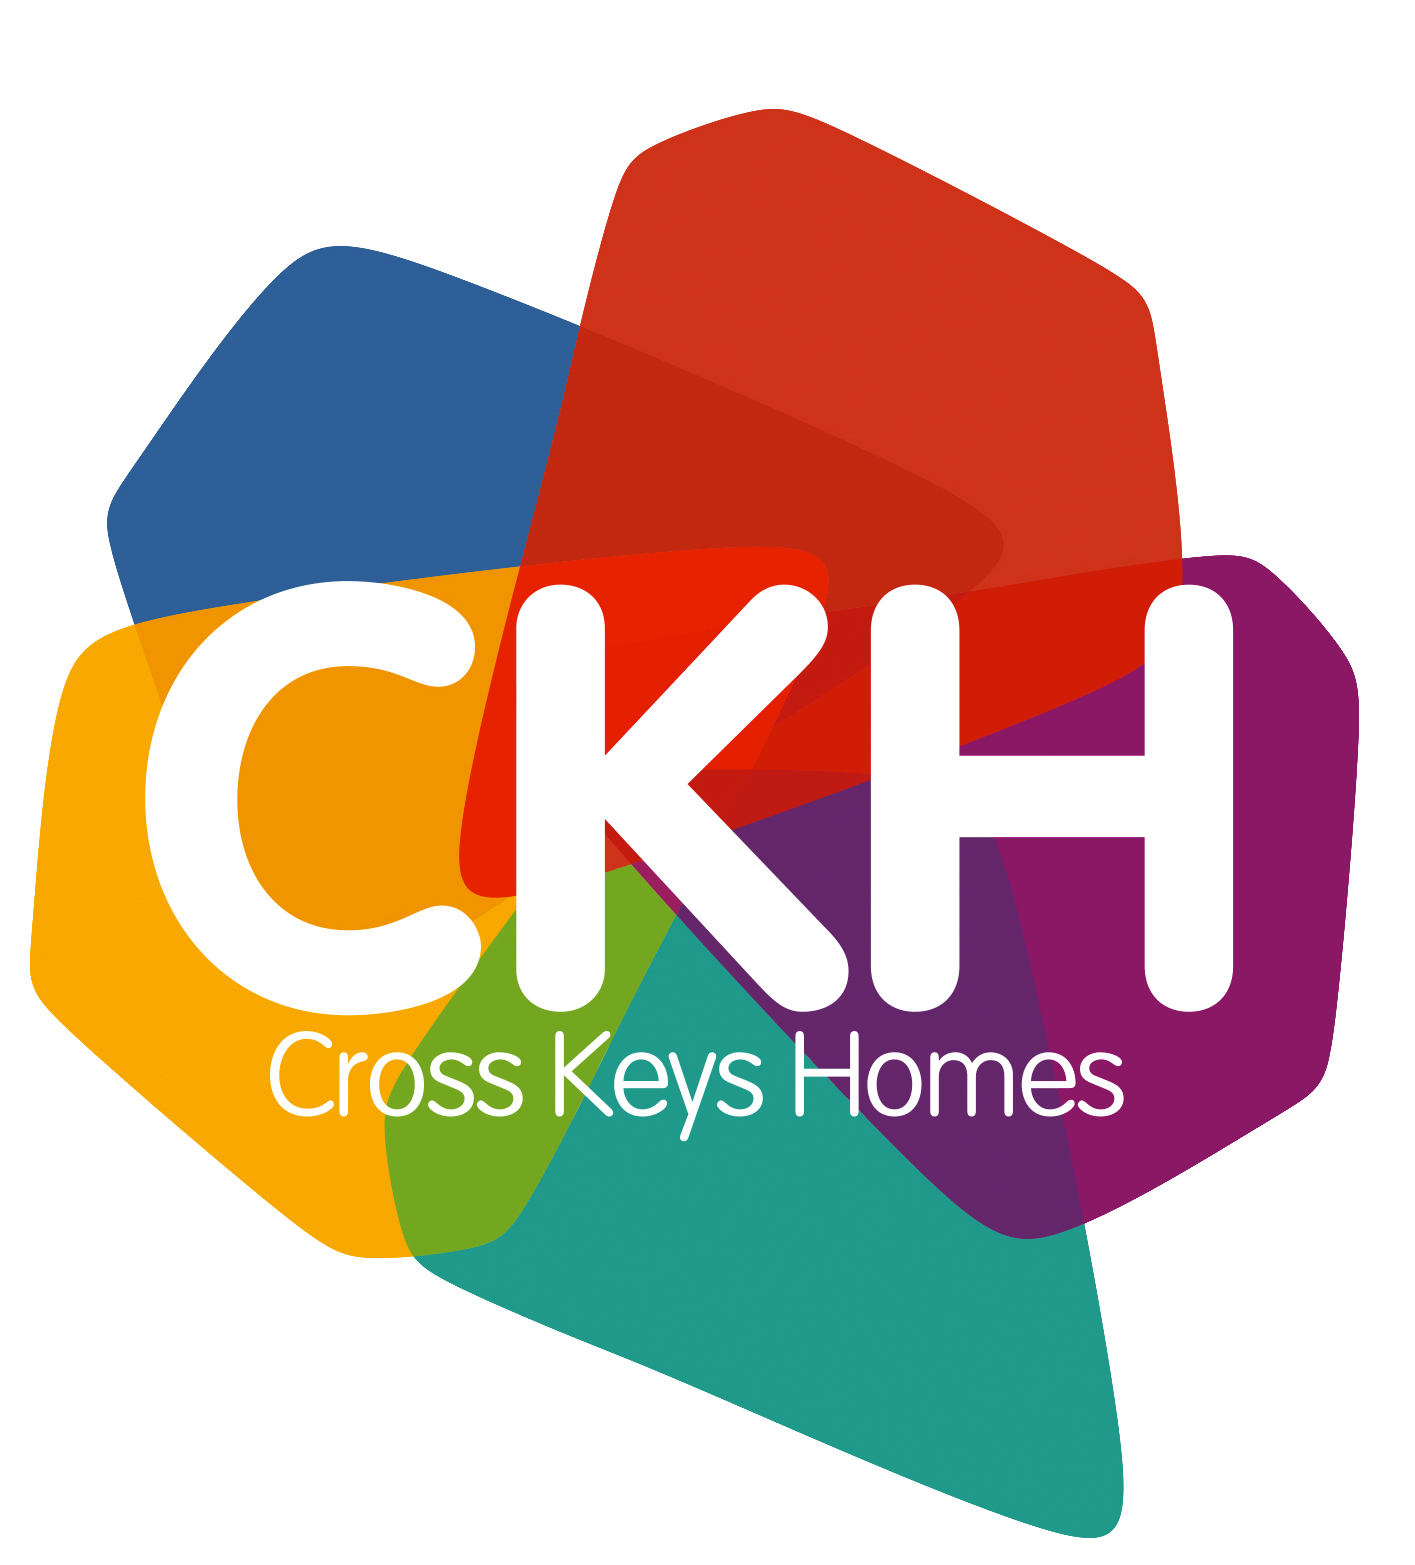 Cross Key Homes